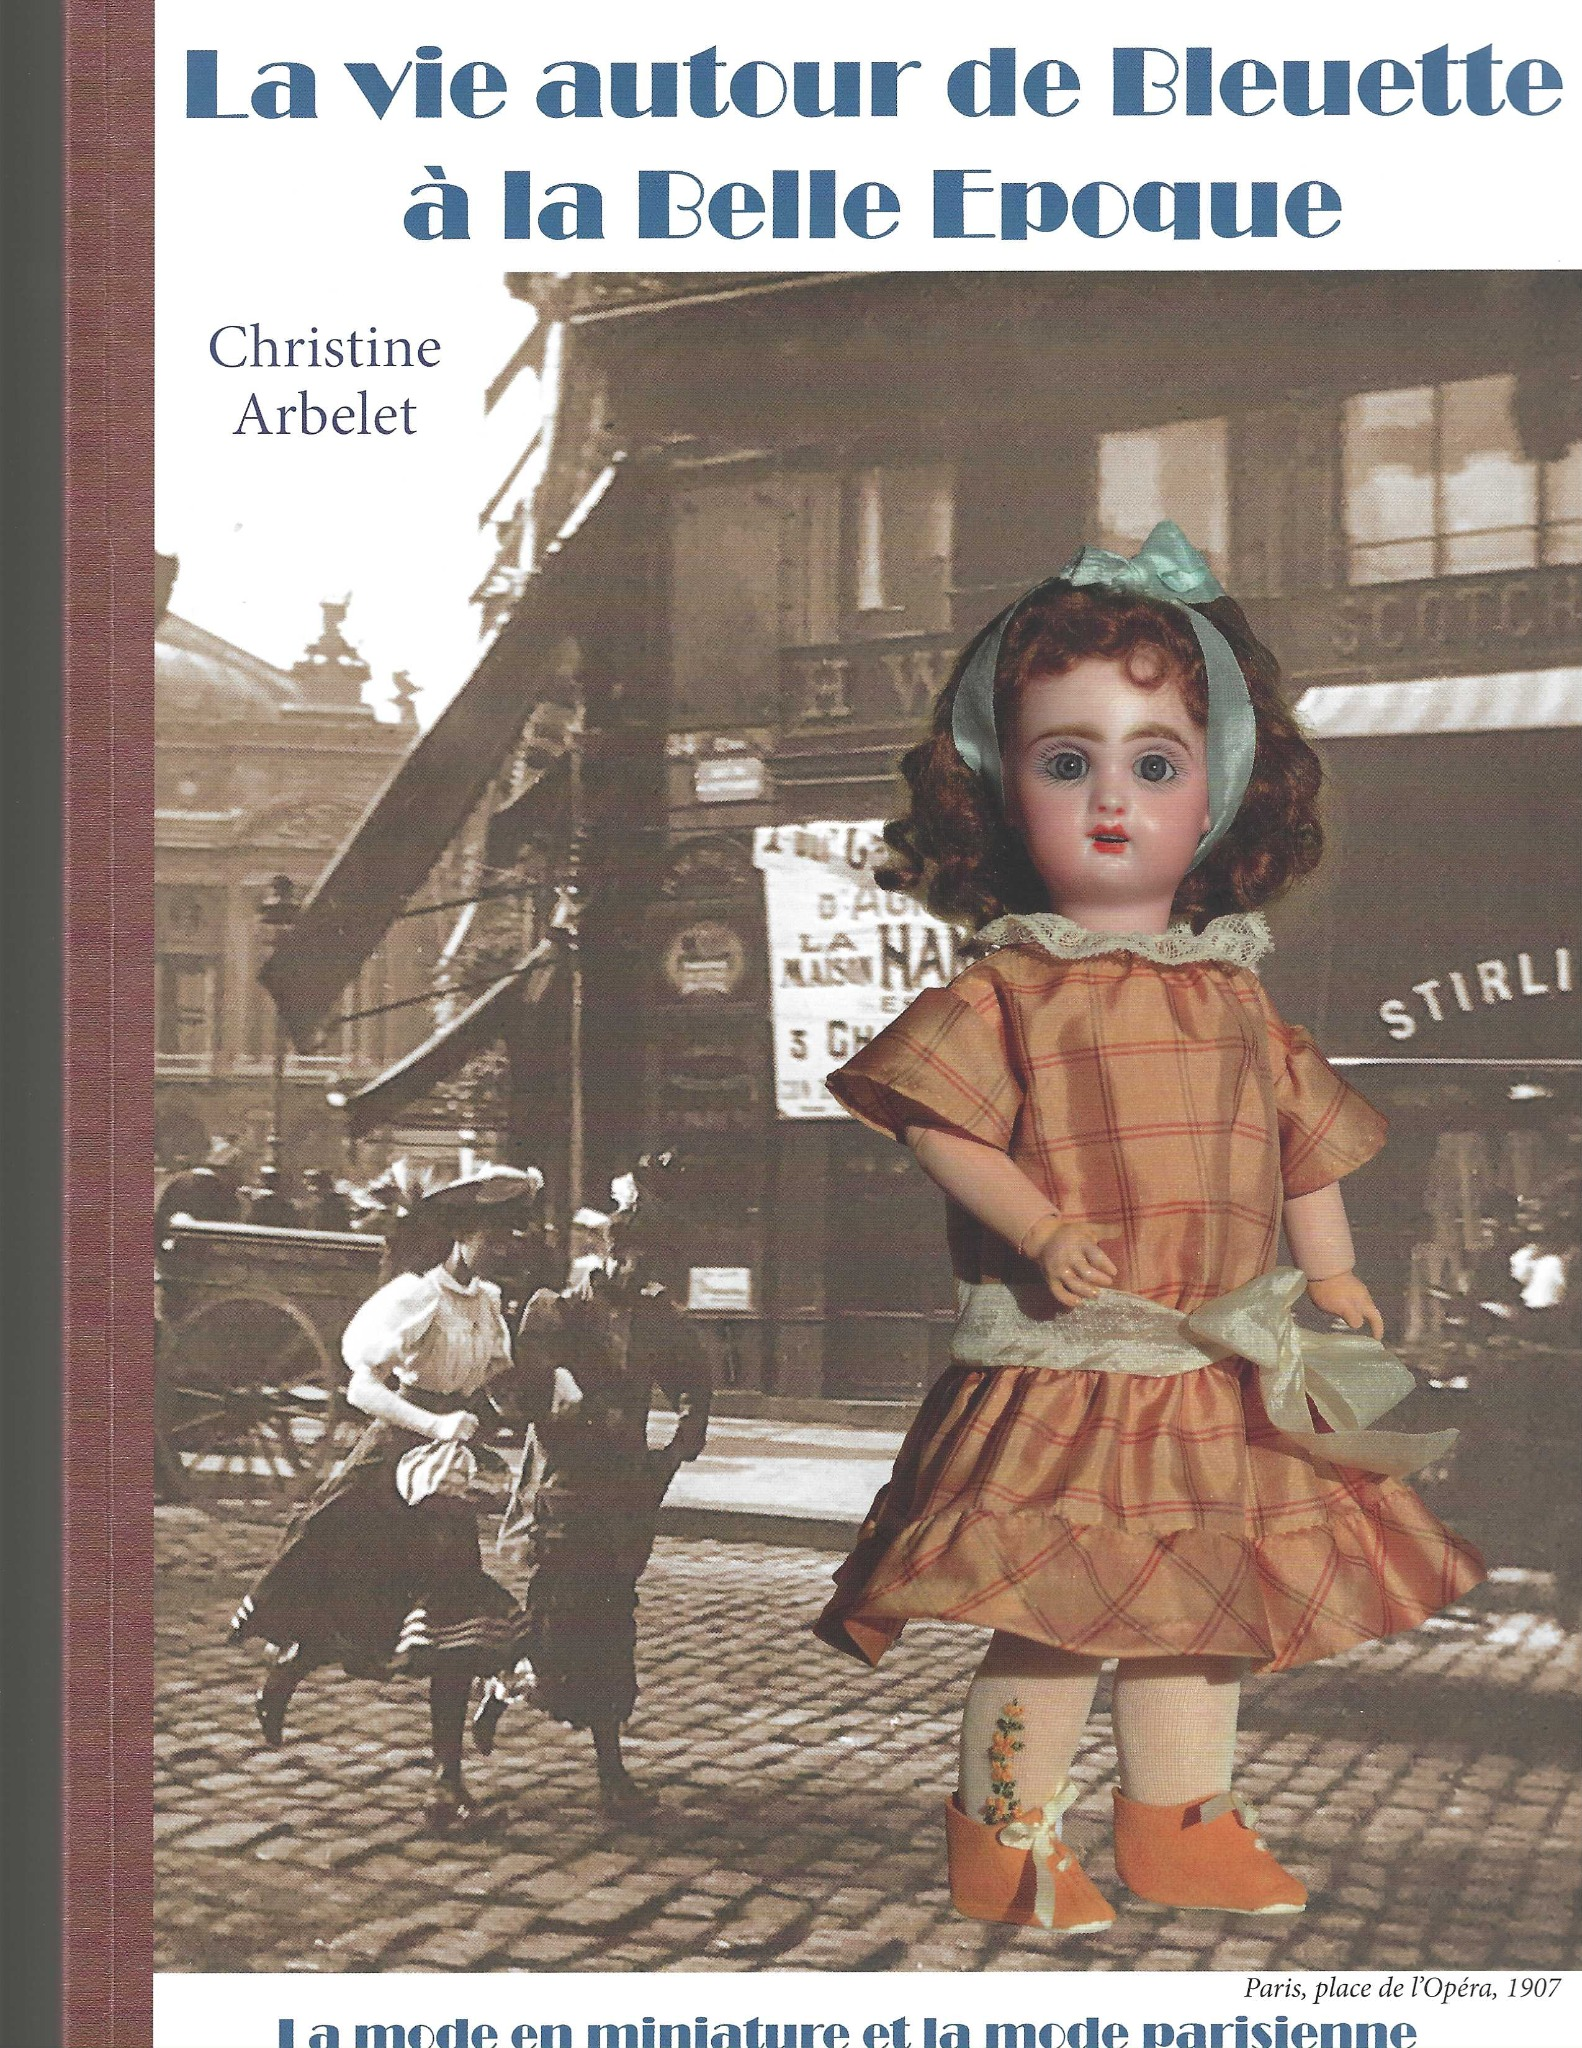 """Bleuette Book """"The Life Around Bleuette"""" by Christine Arbelet"""